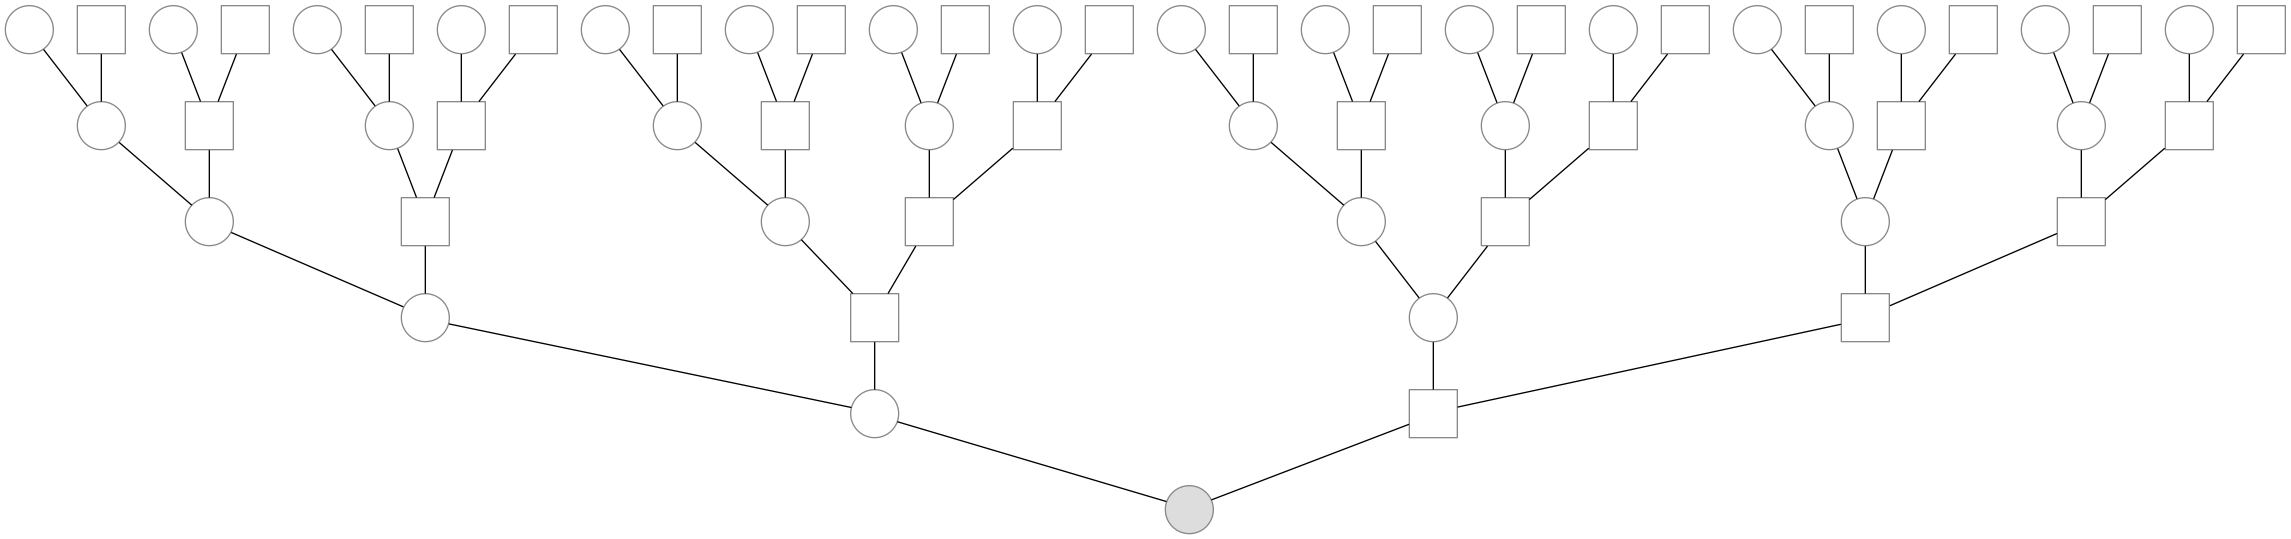 A genealogy back five generations. k generations back, one has 2k ancestors. Circles indicate females, and squares males. The shaded individual is a present-day female.